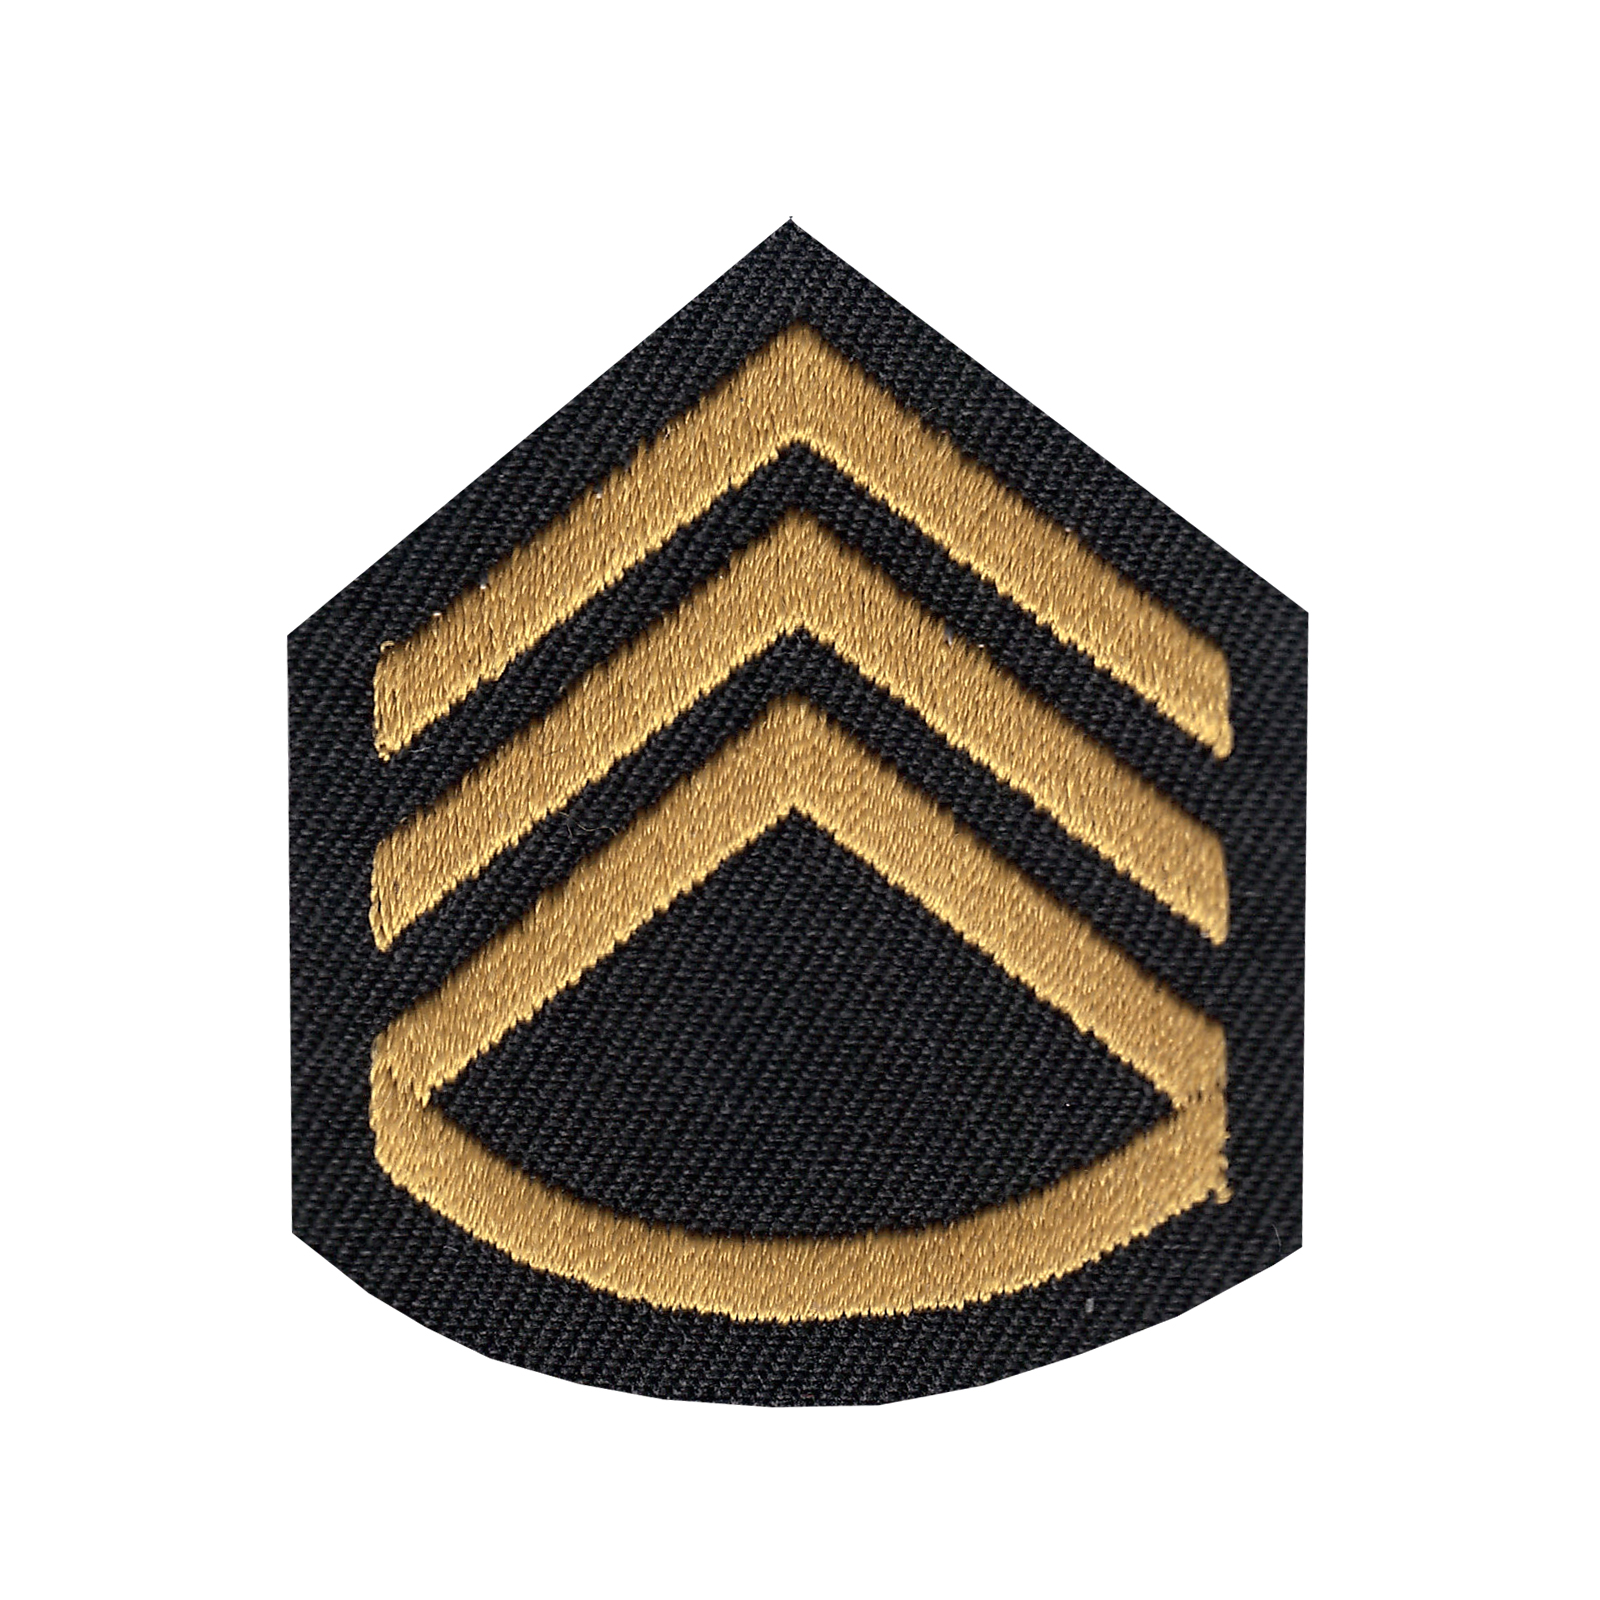 Staff Sergeant Iron On Applique Patch